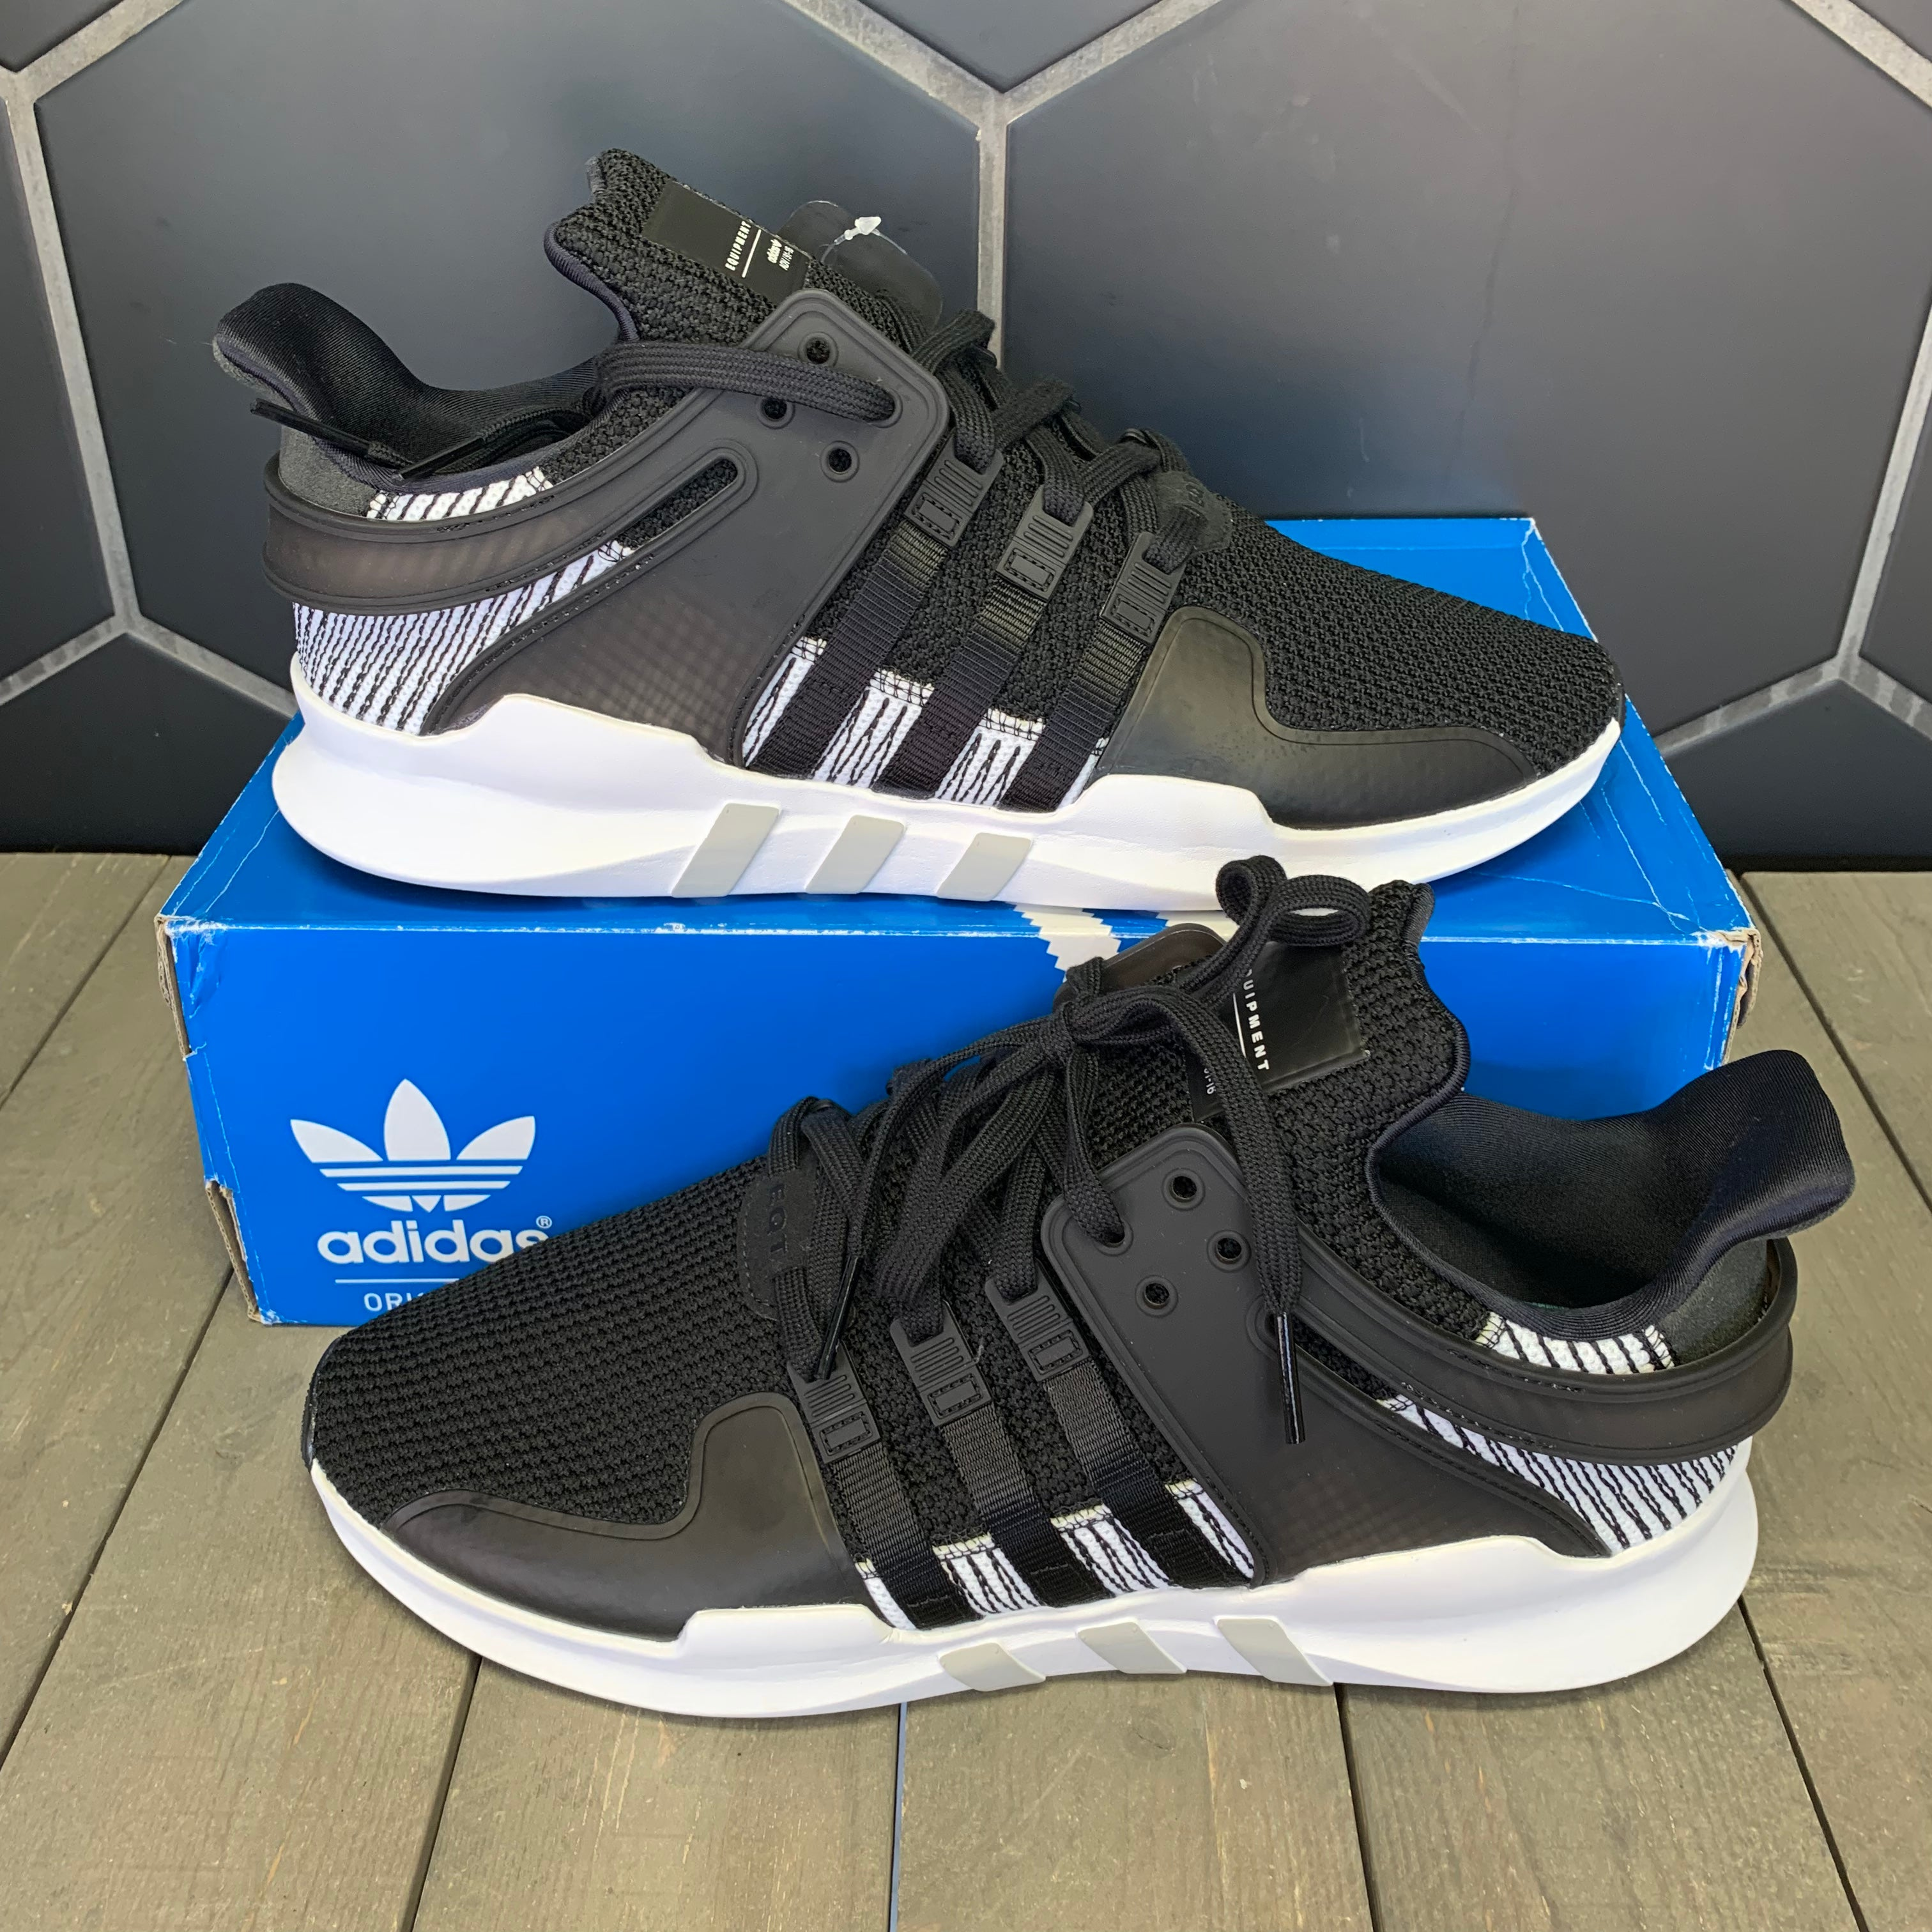 New W/ Box! Adidas EQT Support ADV Black White Shoe Size 13